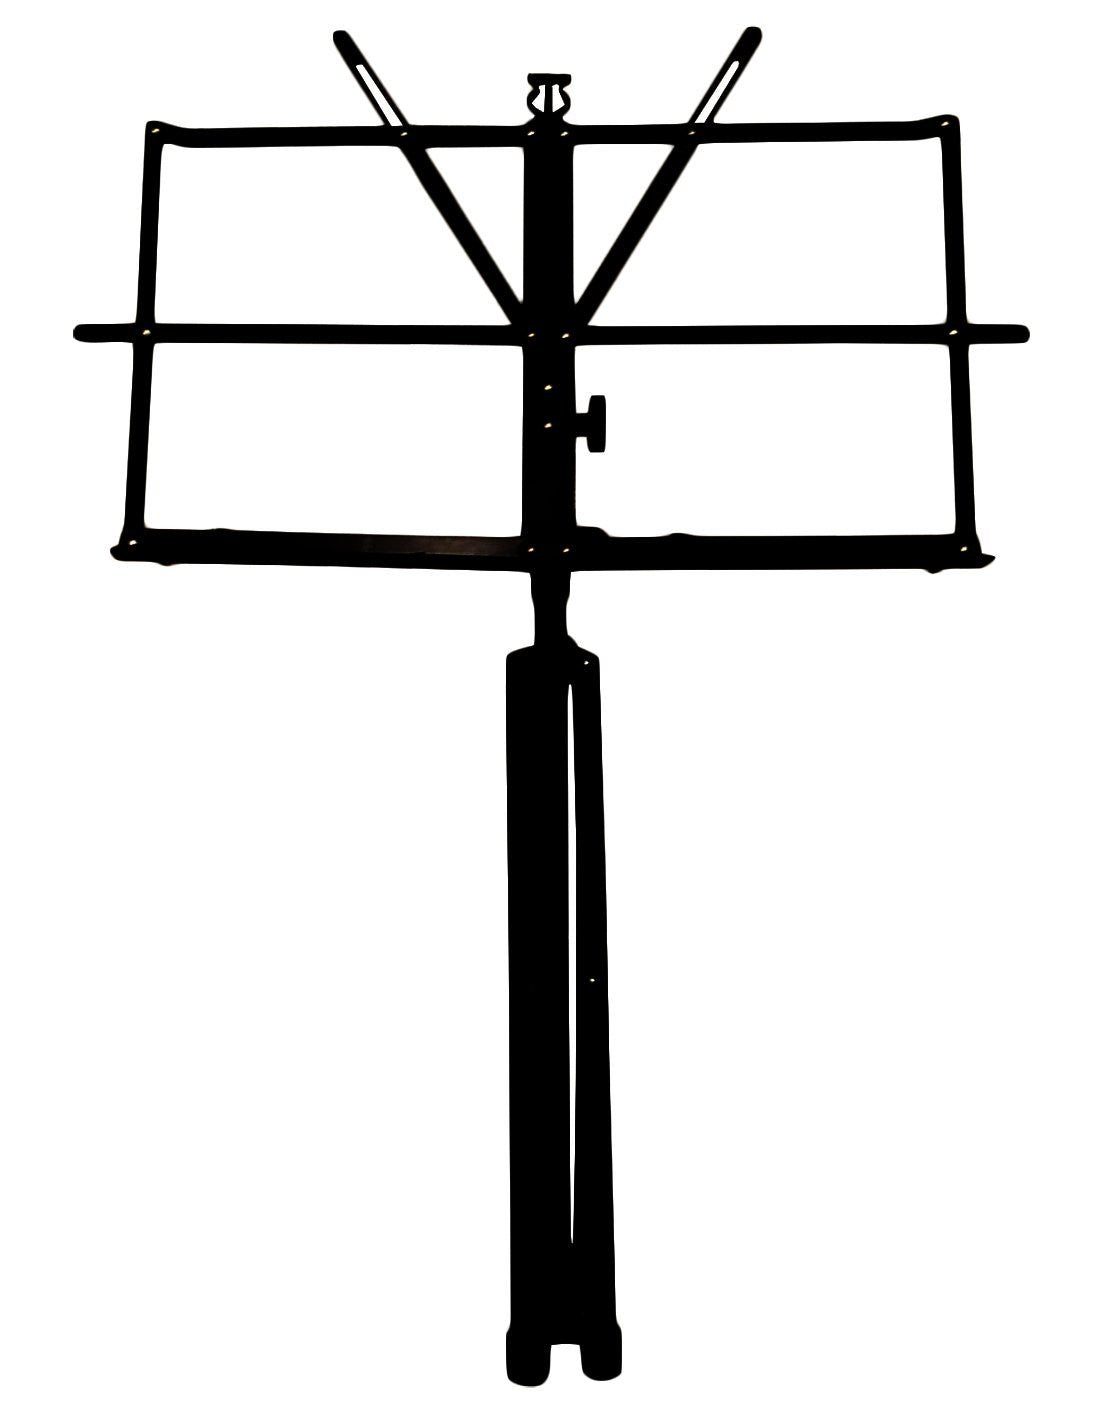 Crafty Gizmos Black Adjustable Folding Music Stand with Carrying Bag